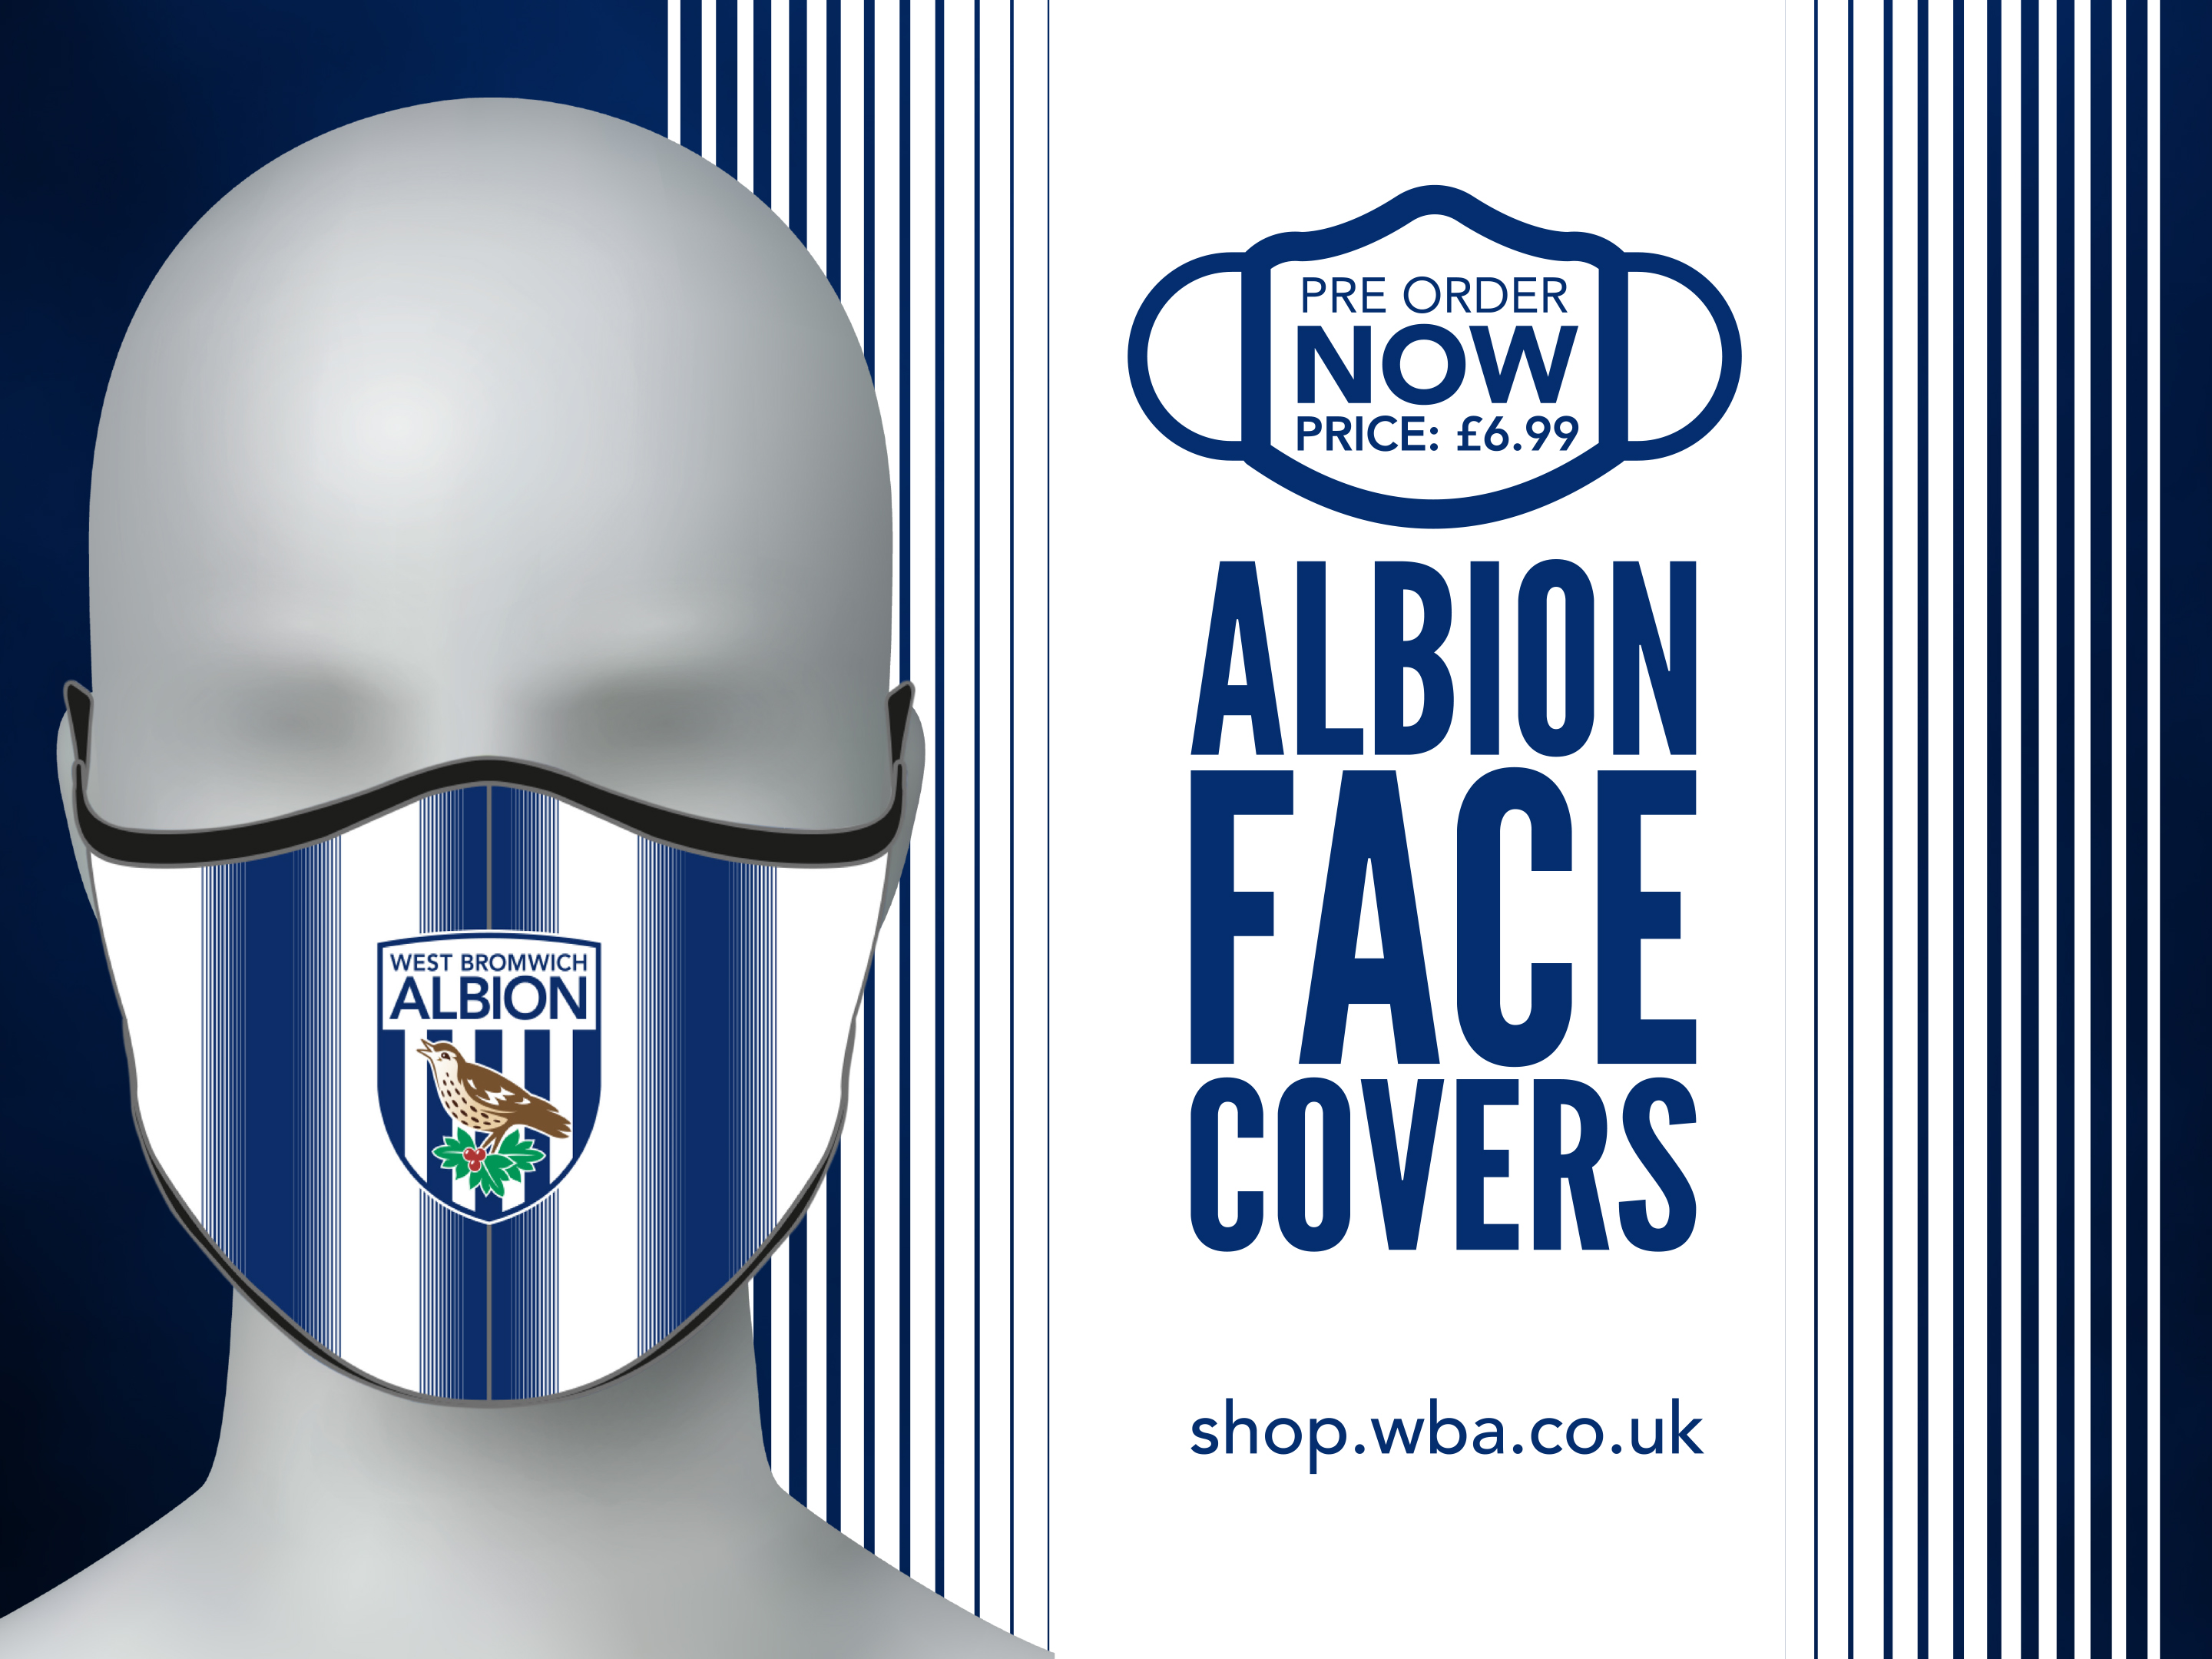 Albion Face Covers